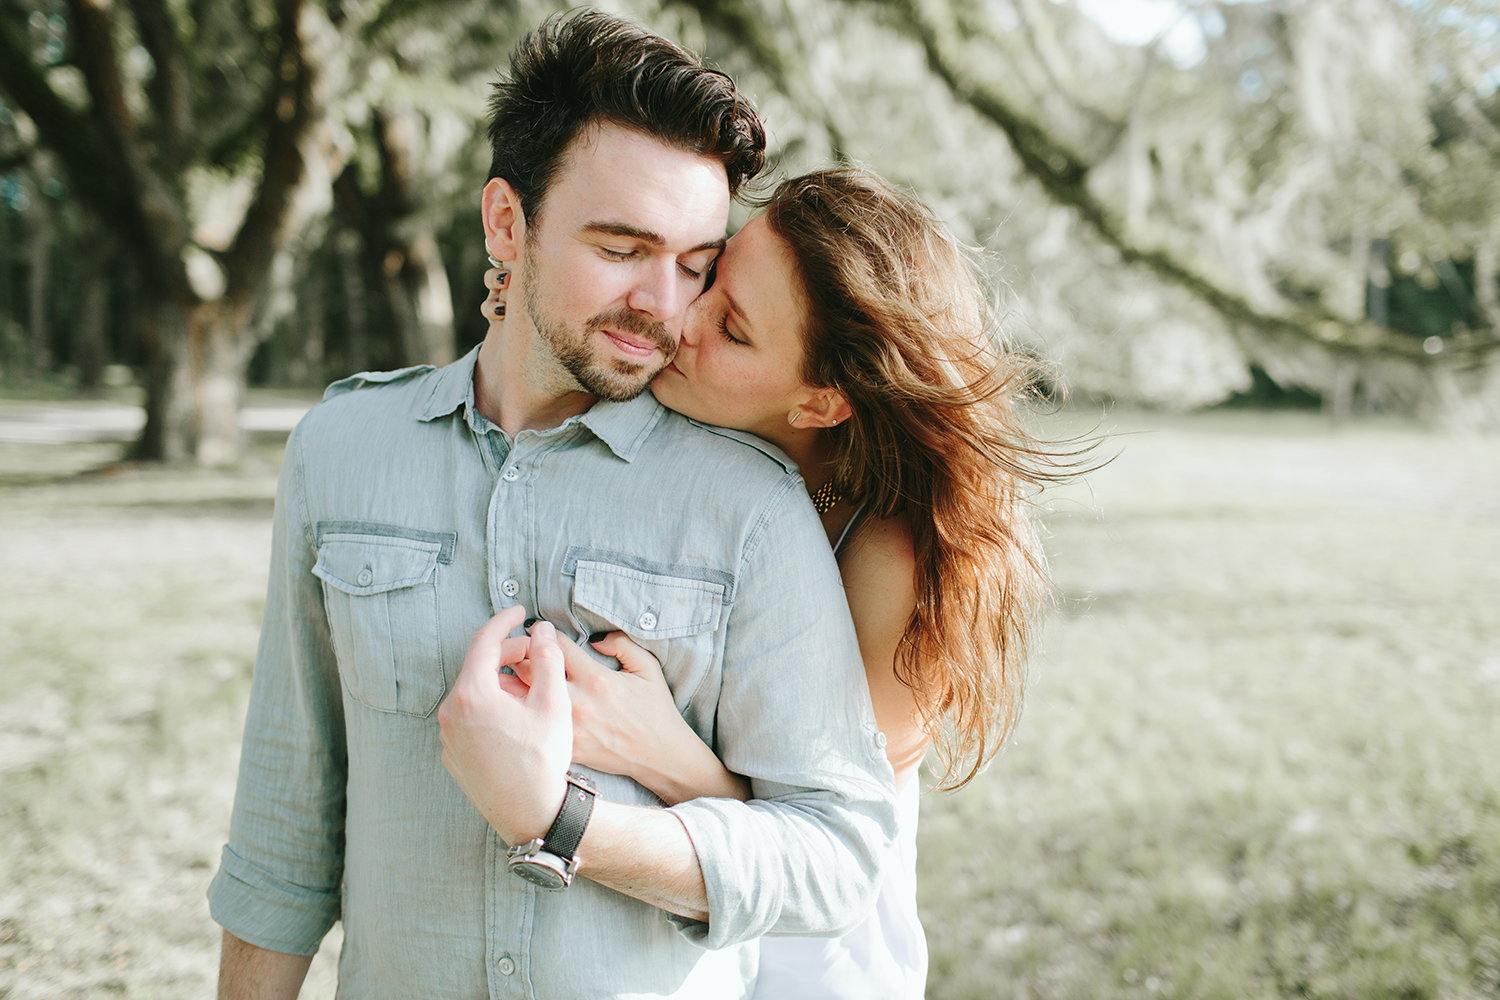 karliwillengaged - alicia white photography-145.jpg